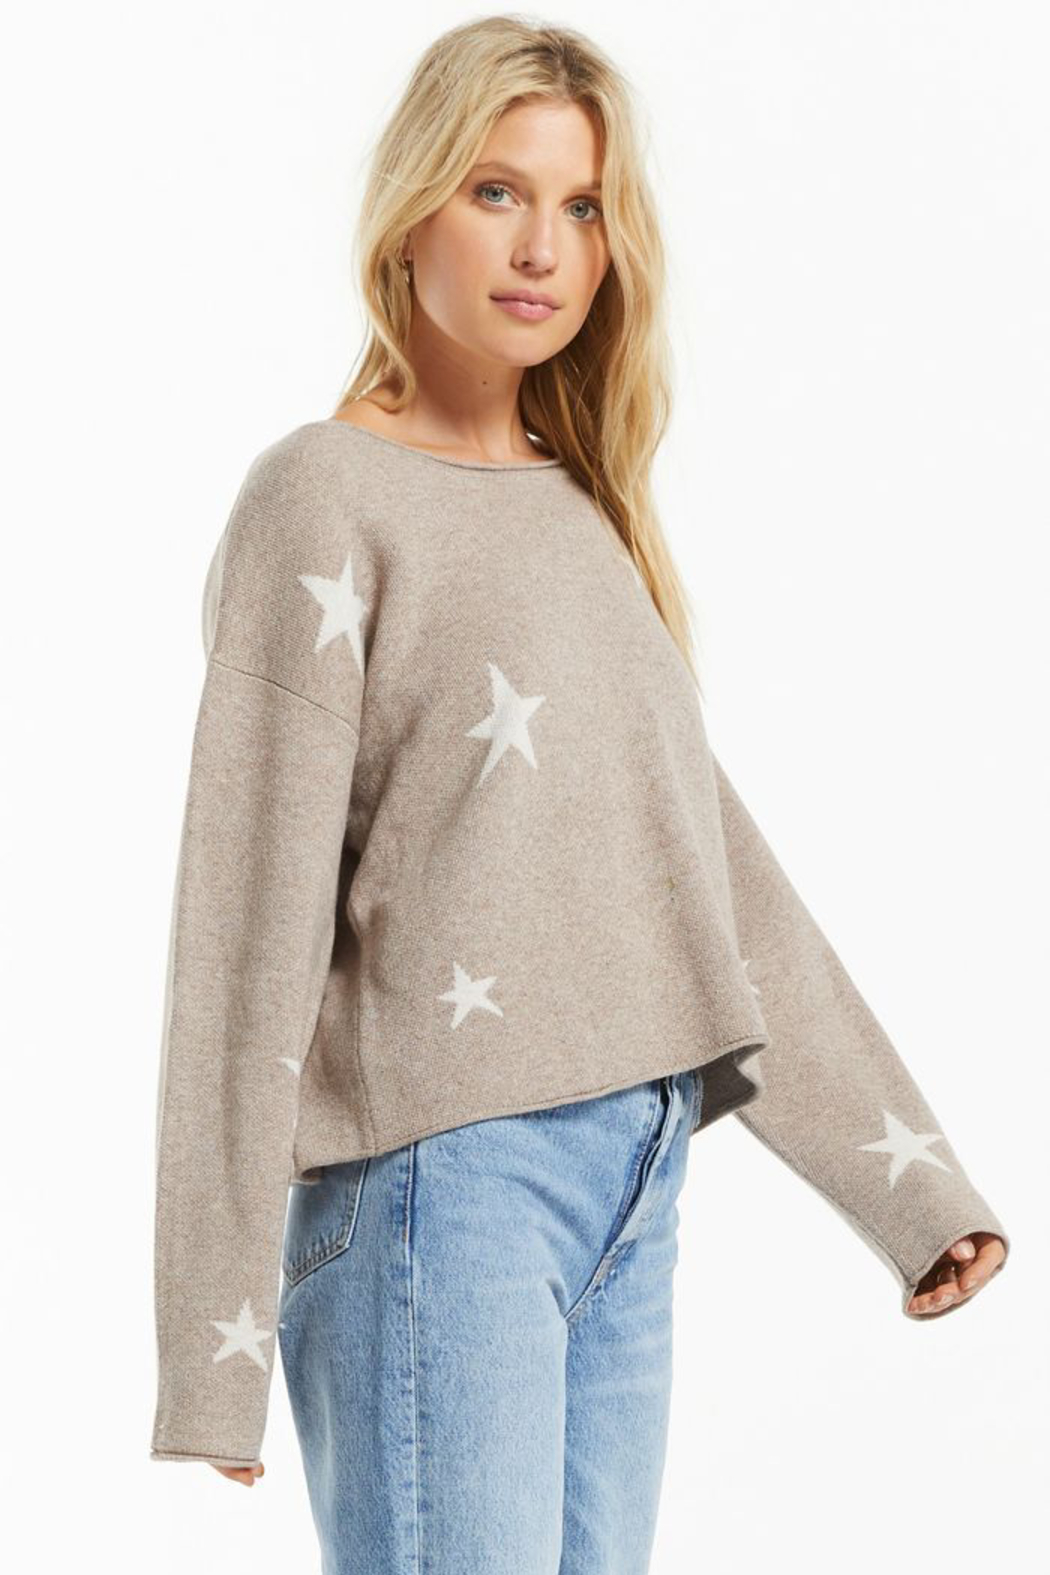 z supply Kennedy Star Sweater - Back Cropped Image